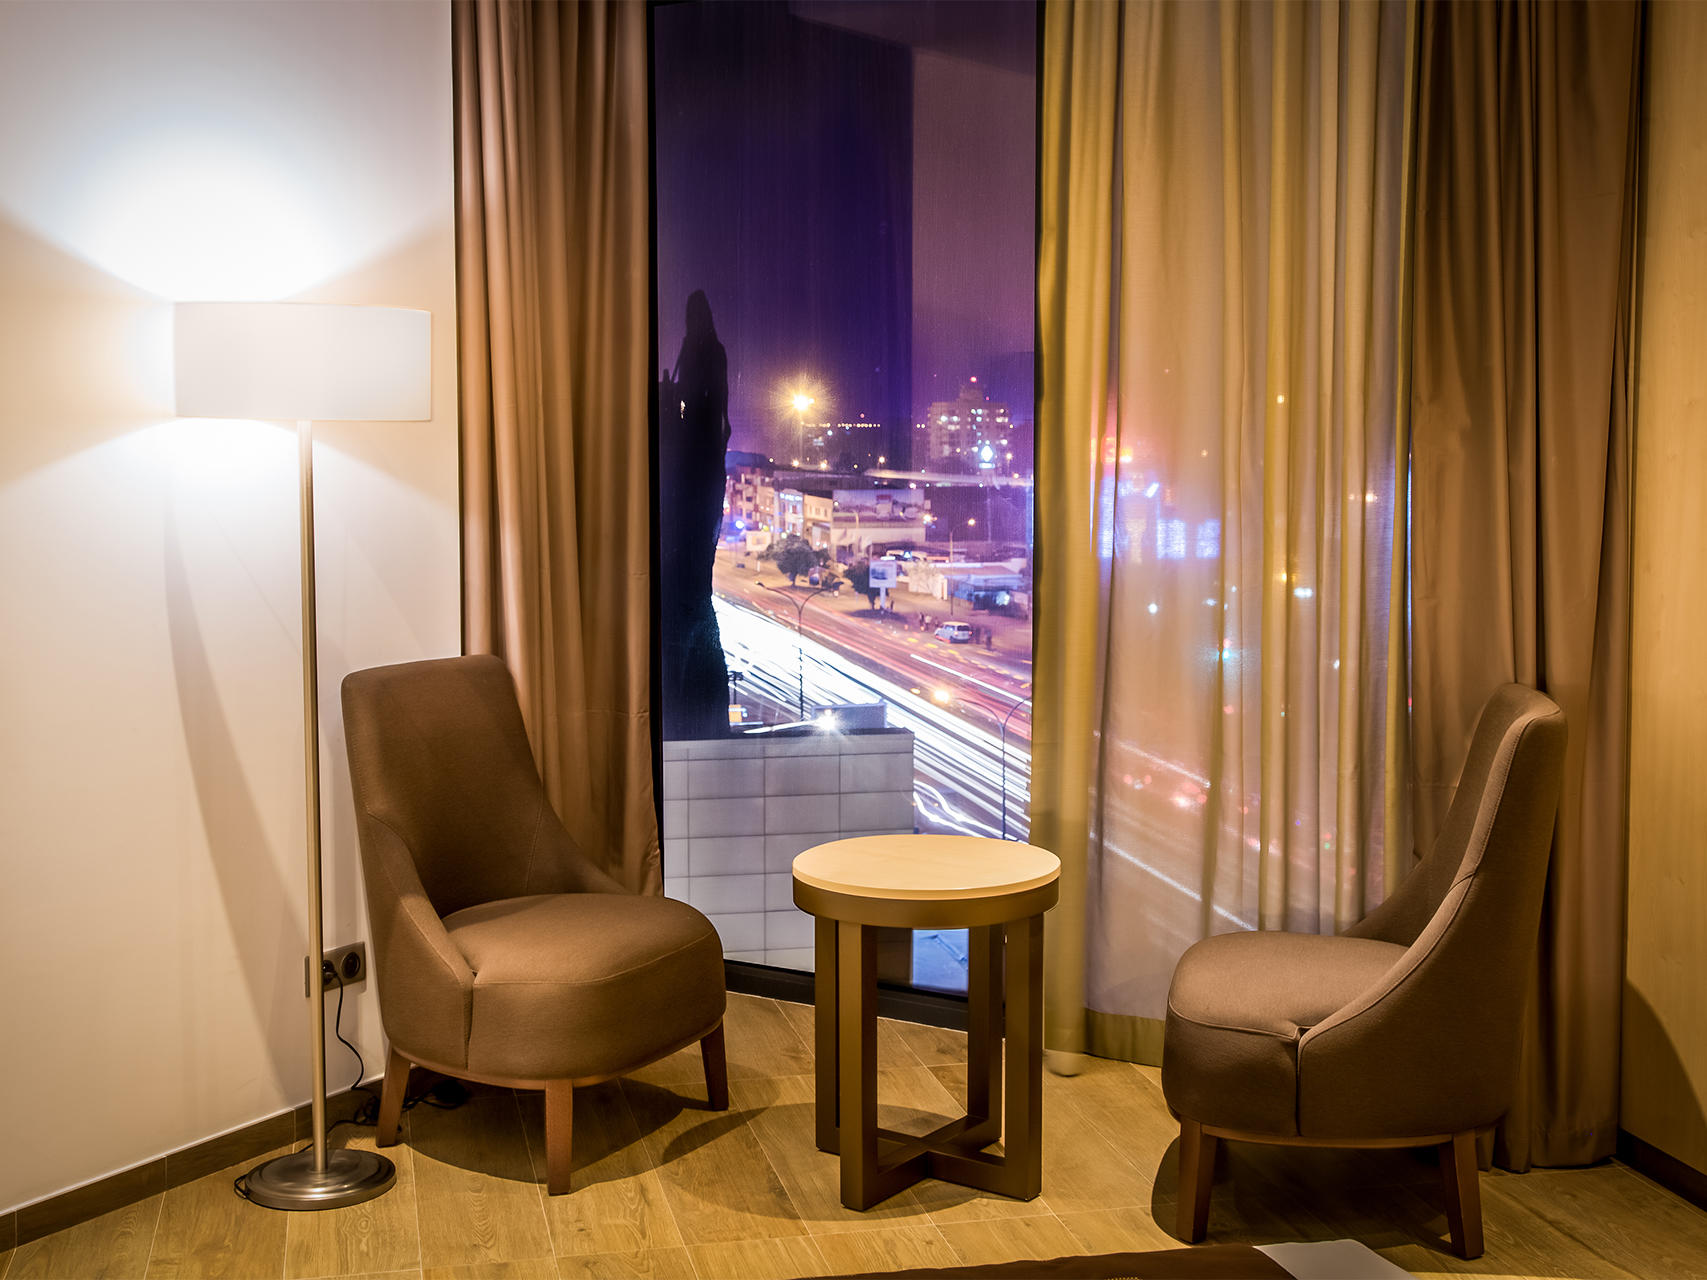 Two chairs and one coffee table with a window with the city view behind of Standard room in the Azalai Hotel Abidjan